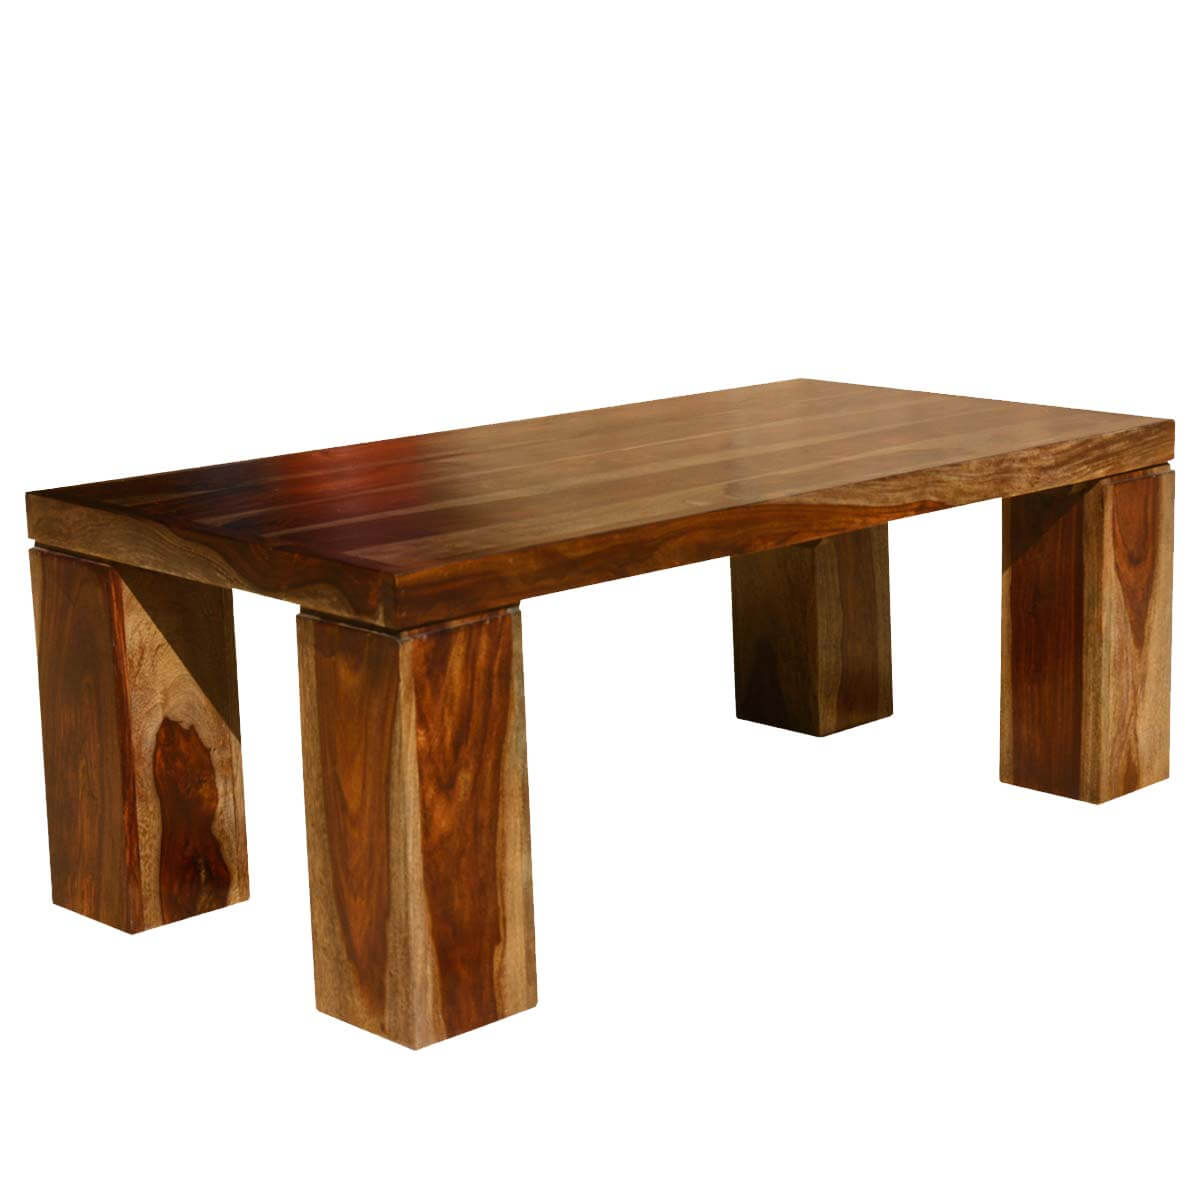 Solid Wood Block Coffee Table: Contemporary Solid Wood Espresso Coffee Table W Block Legs